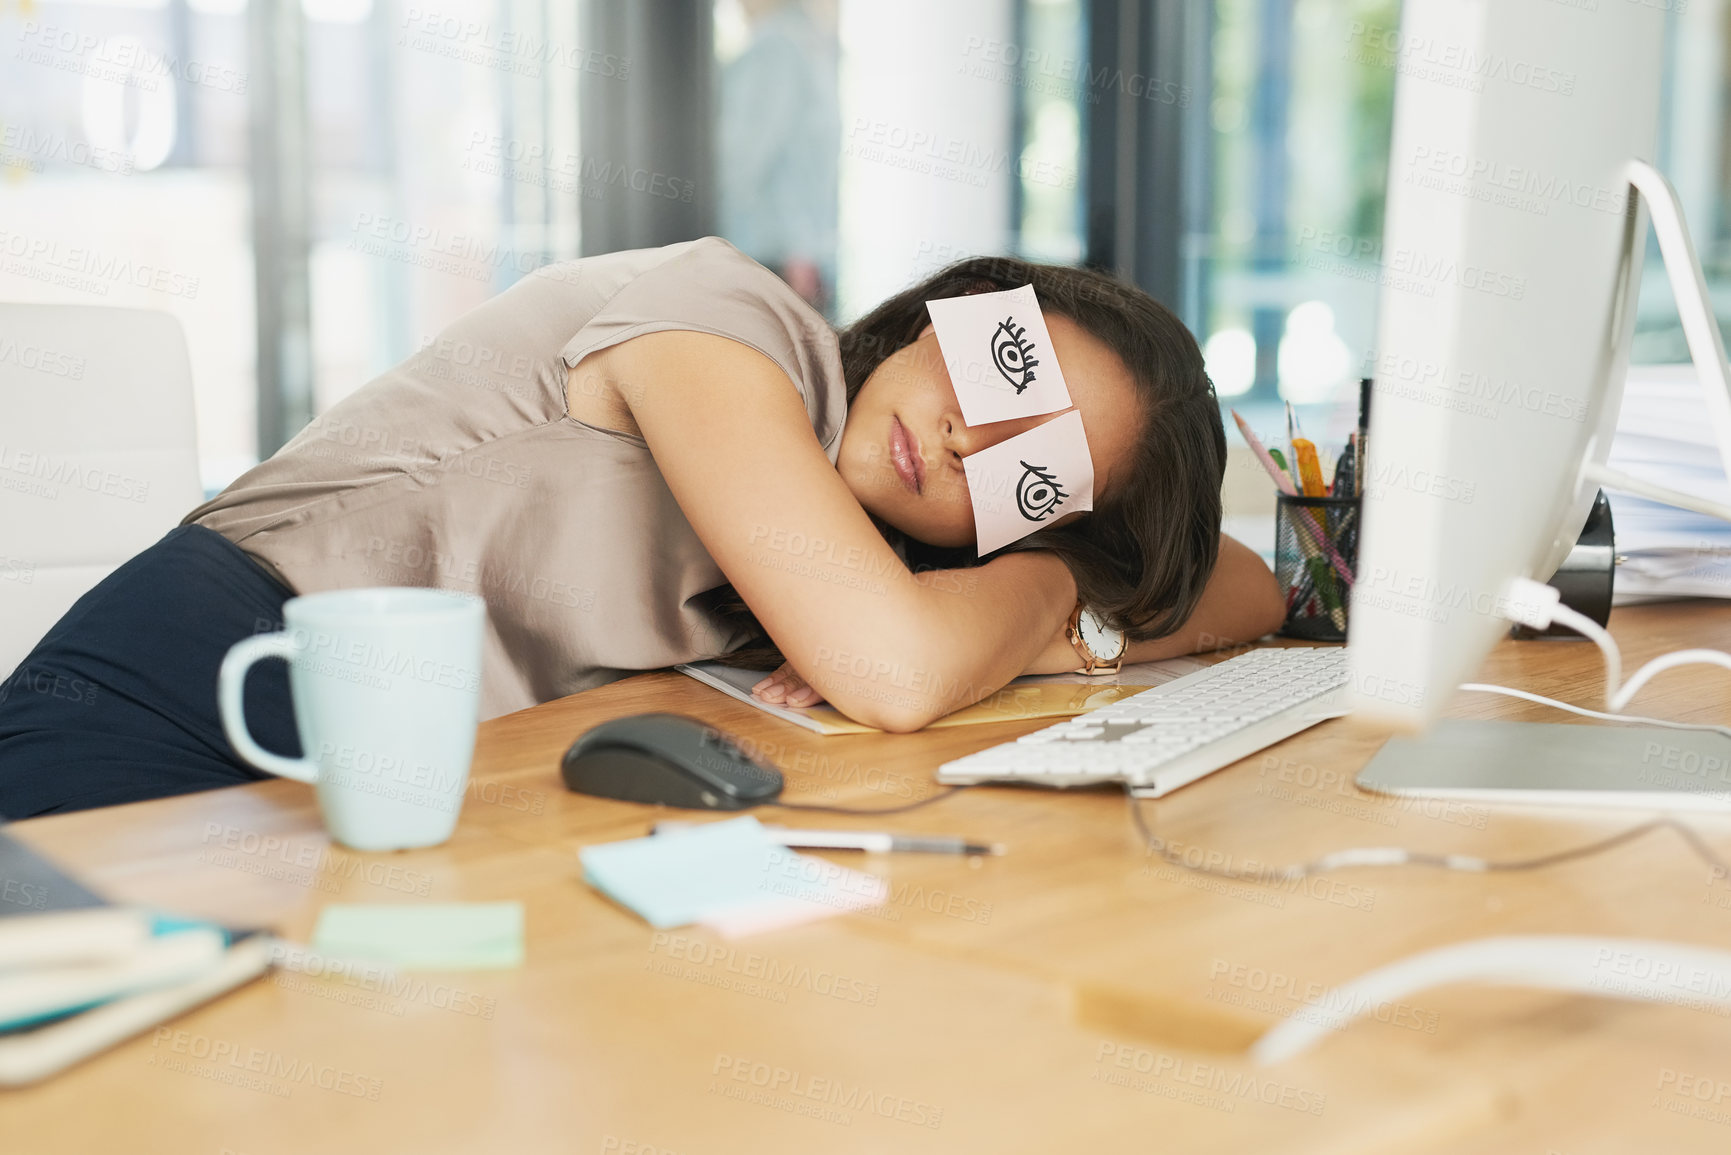 Buy stock photo Shot of a tired businesswoman napping at her desk with adhesive notes on her eyes